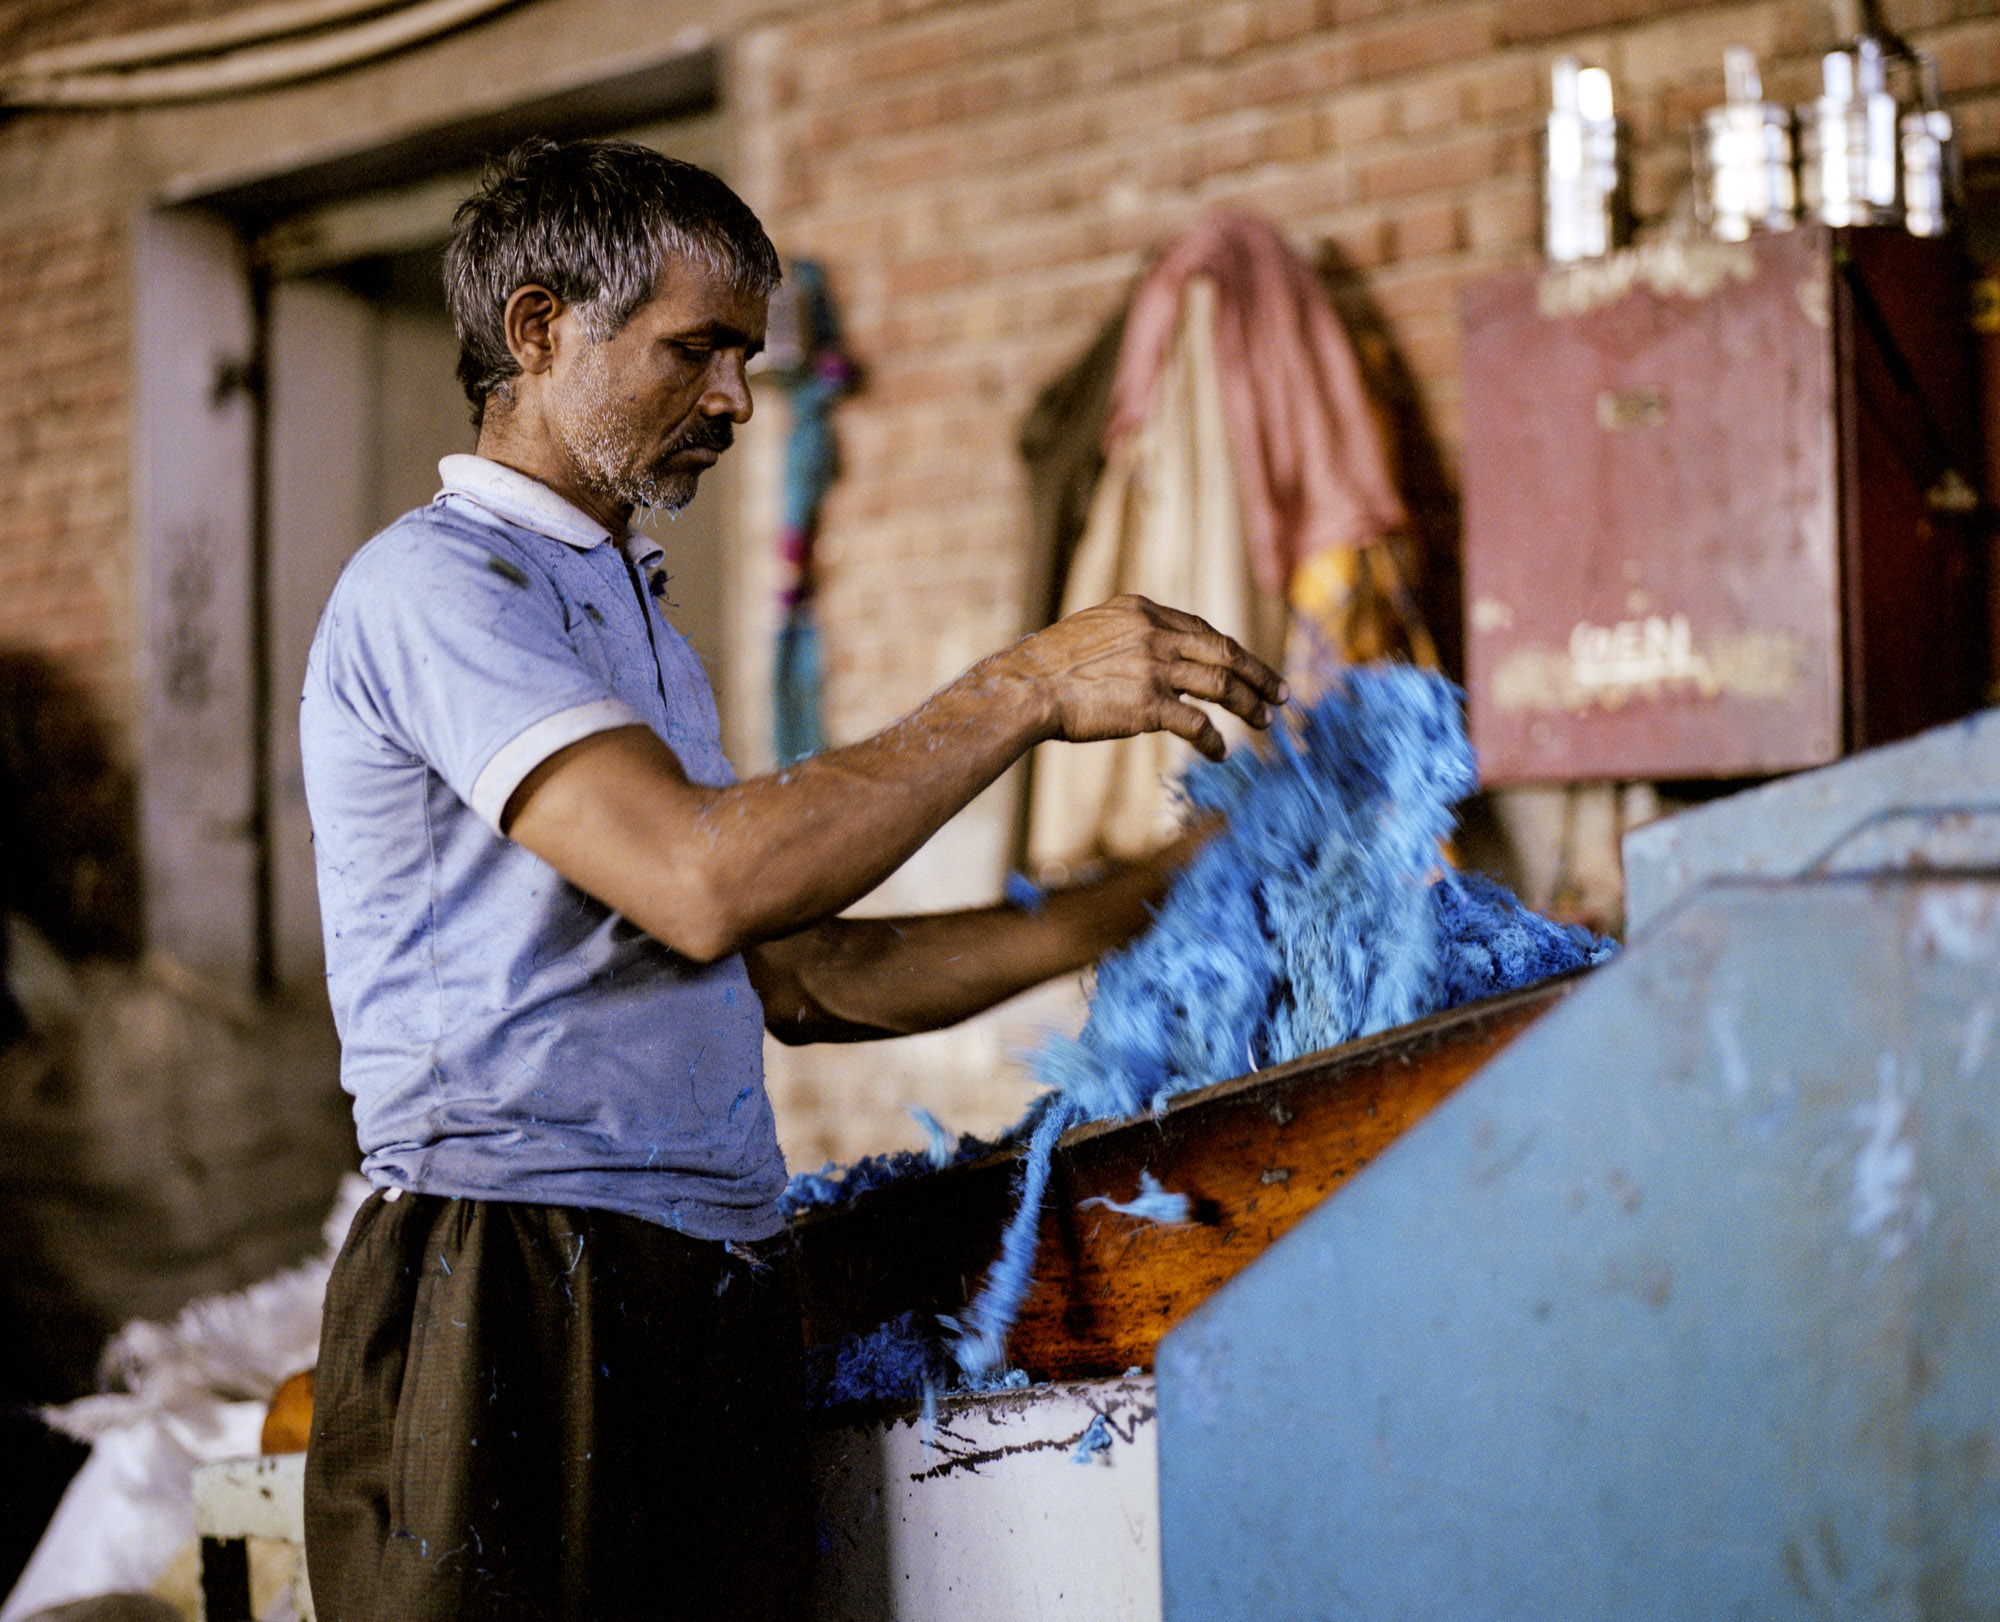 """Cavernous sheds are filled with old machines which break down the knitted and woven clothing into pulp, a source of reclaimed woolen and wool-mix fibres known as """"shoddy""""."""